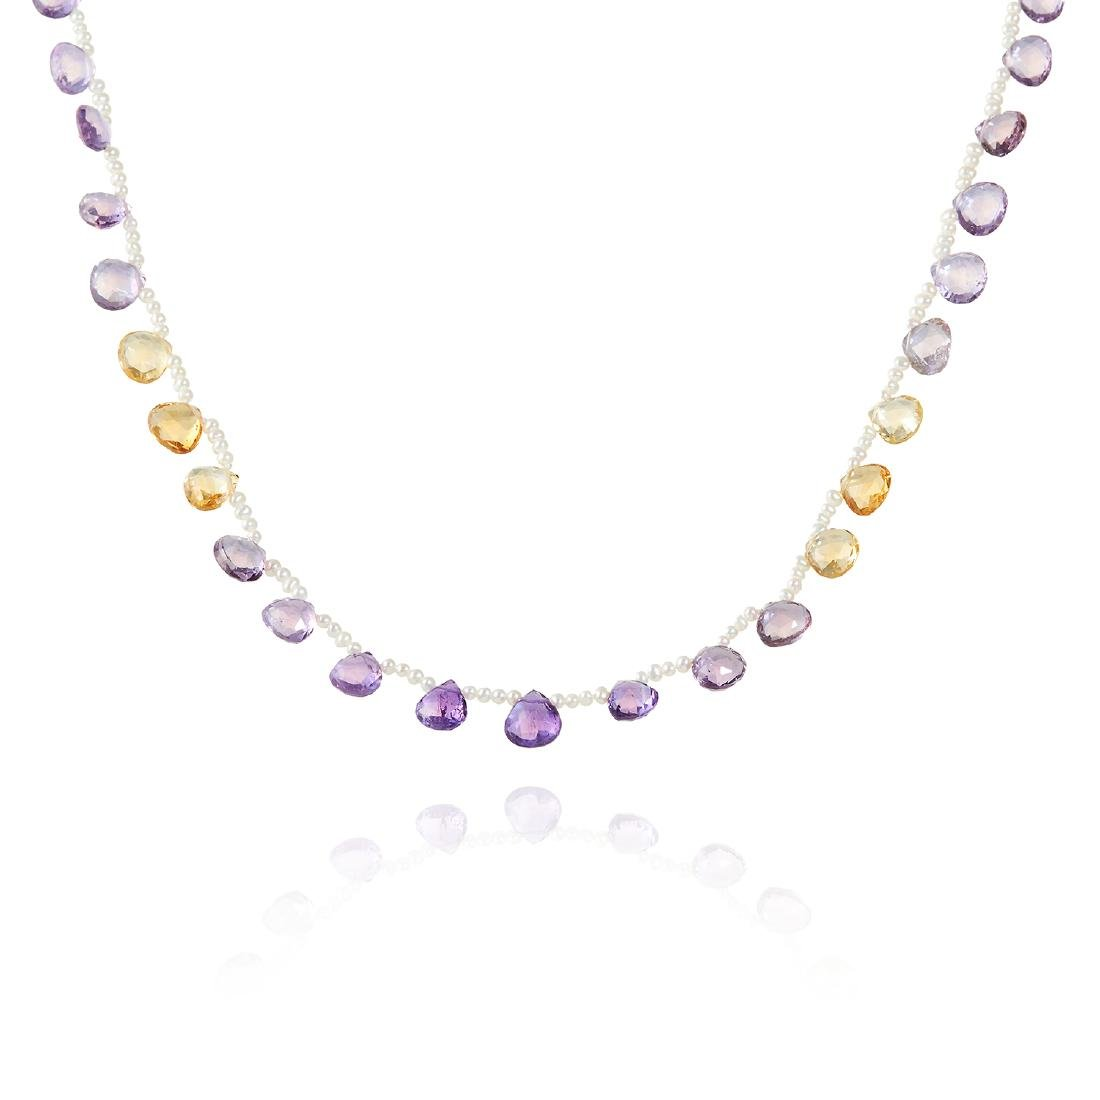 AN AMETHYST, CITRINE AND SEED PEARL NECKLACE in 18ct